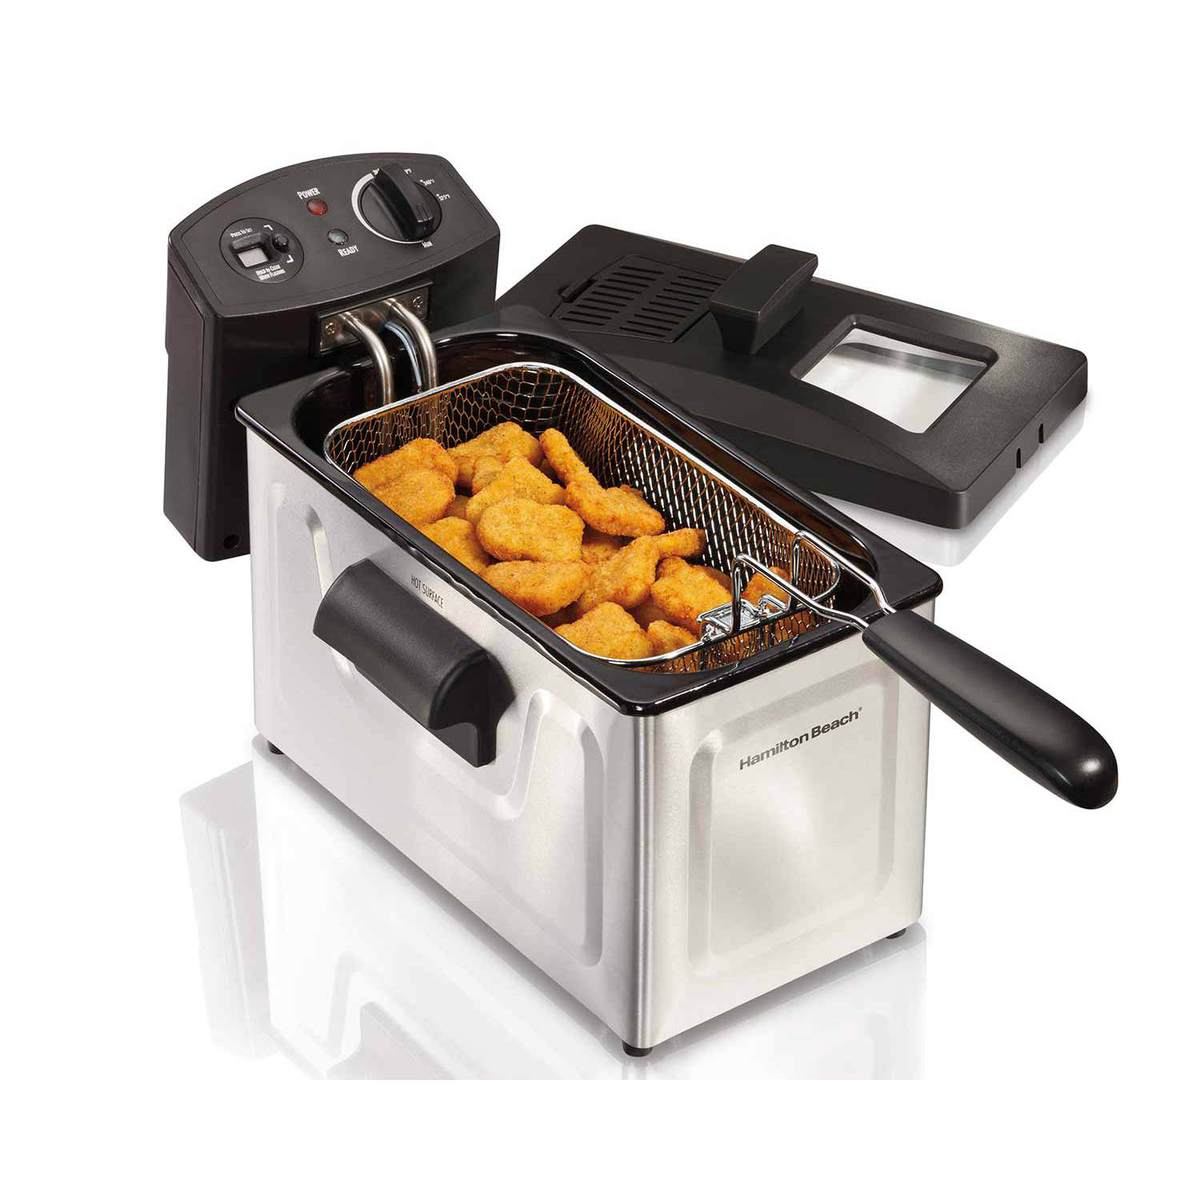 Deep Fryer, 12 Cup Oil Capacity with Digital Timer (35033)